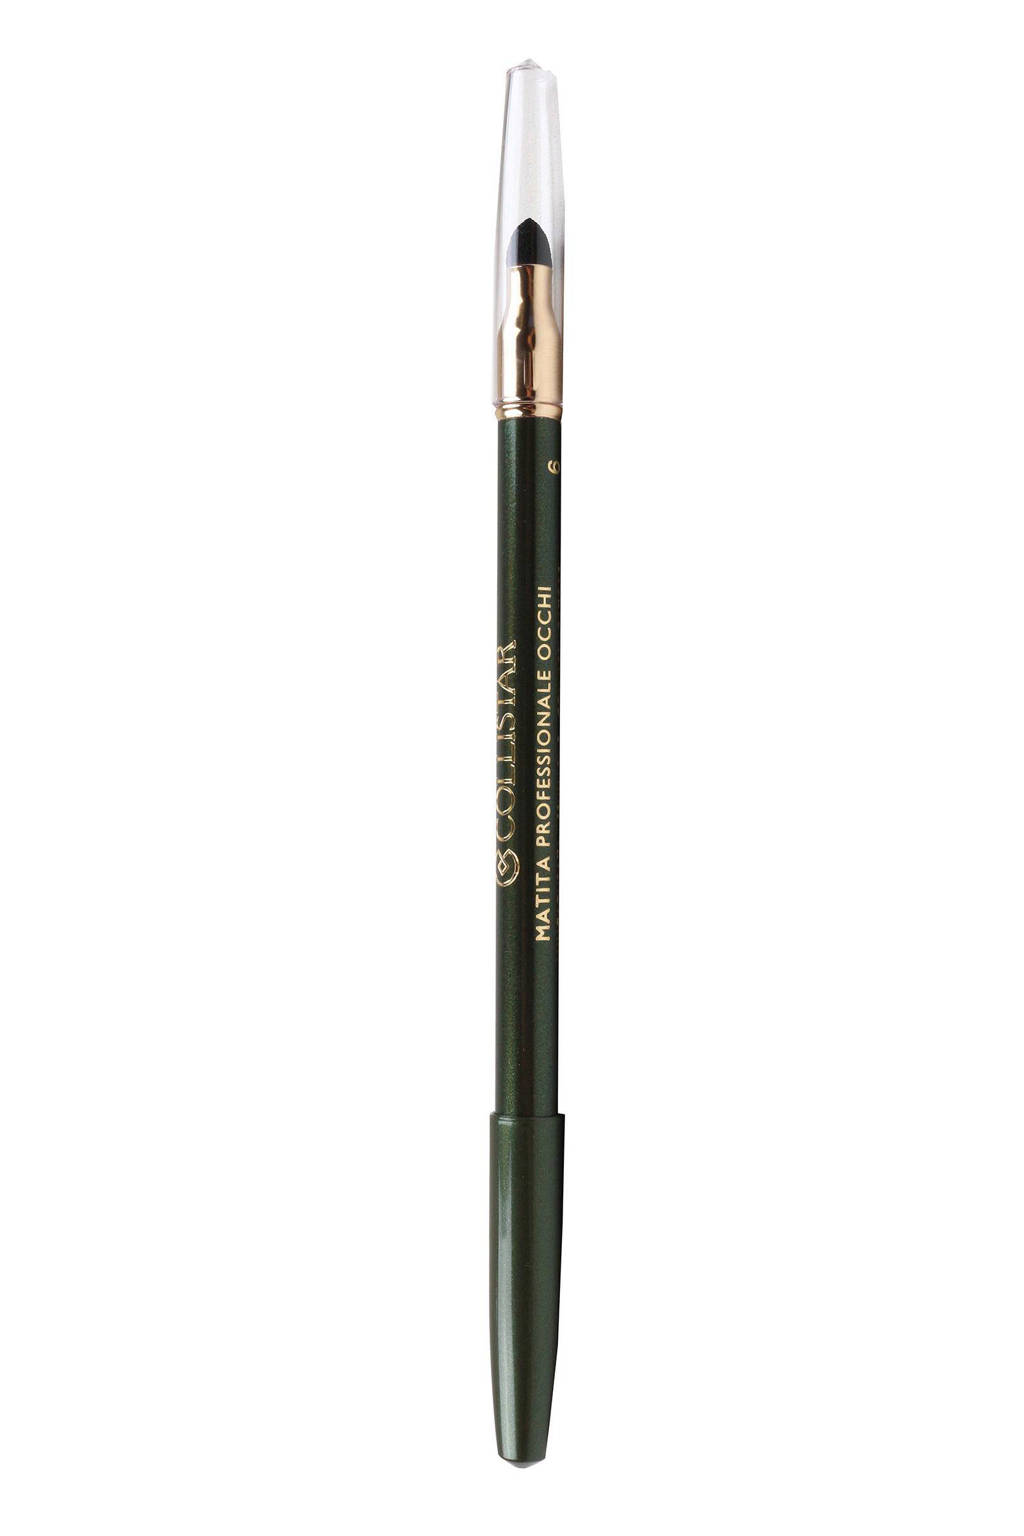 Collistar Professional oogpotlood - 06 Green Forest